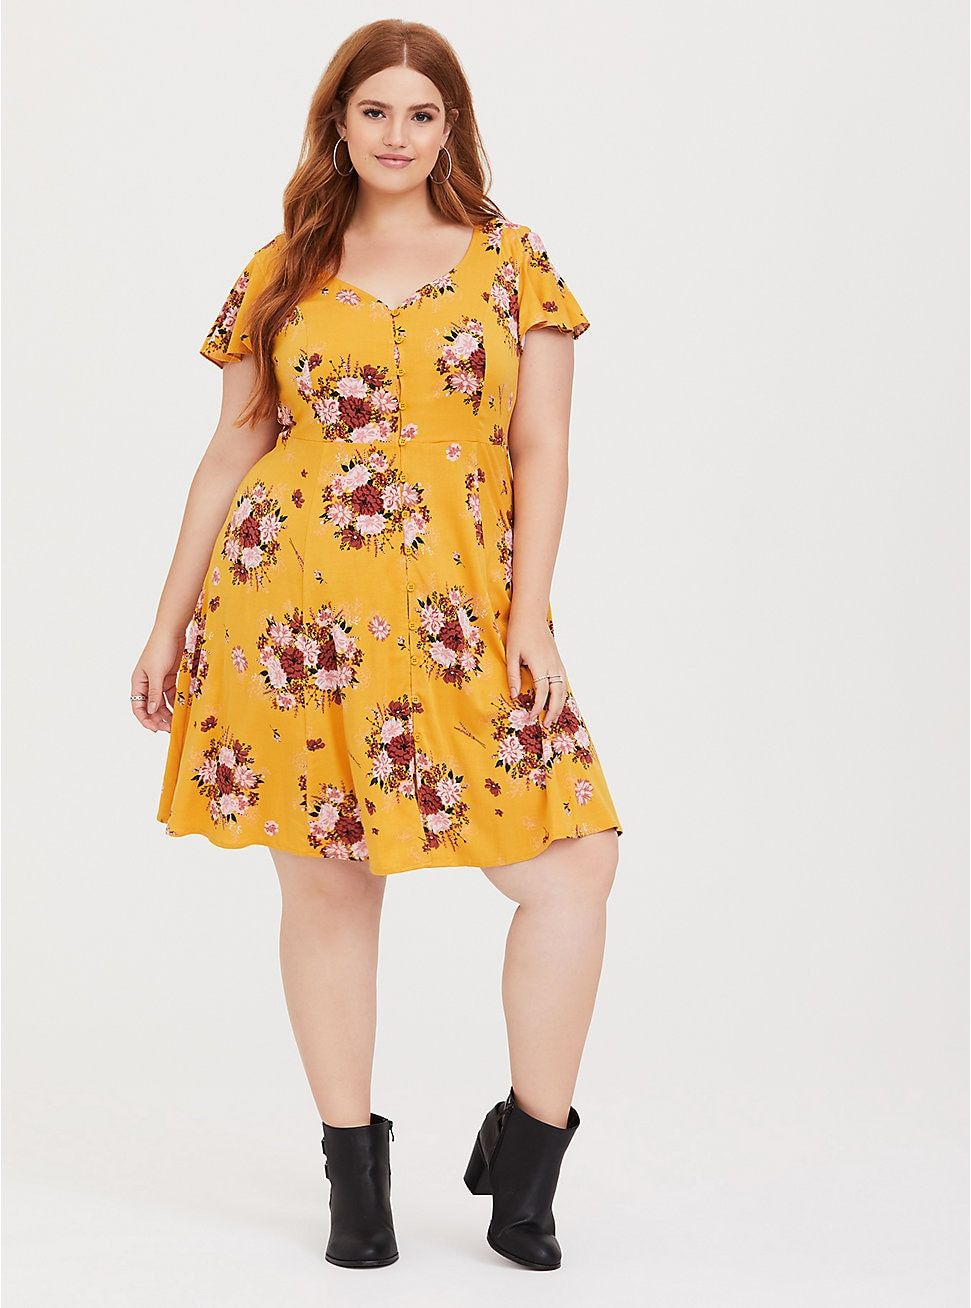 a456b0ad51cd Yellow Floral Button-Front Challis Skater Dress in 2019 | Dresses ...